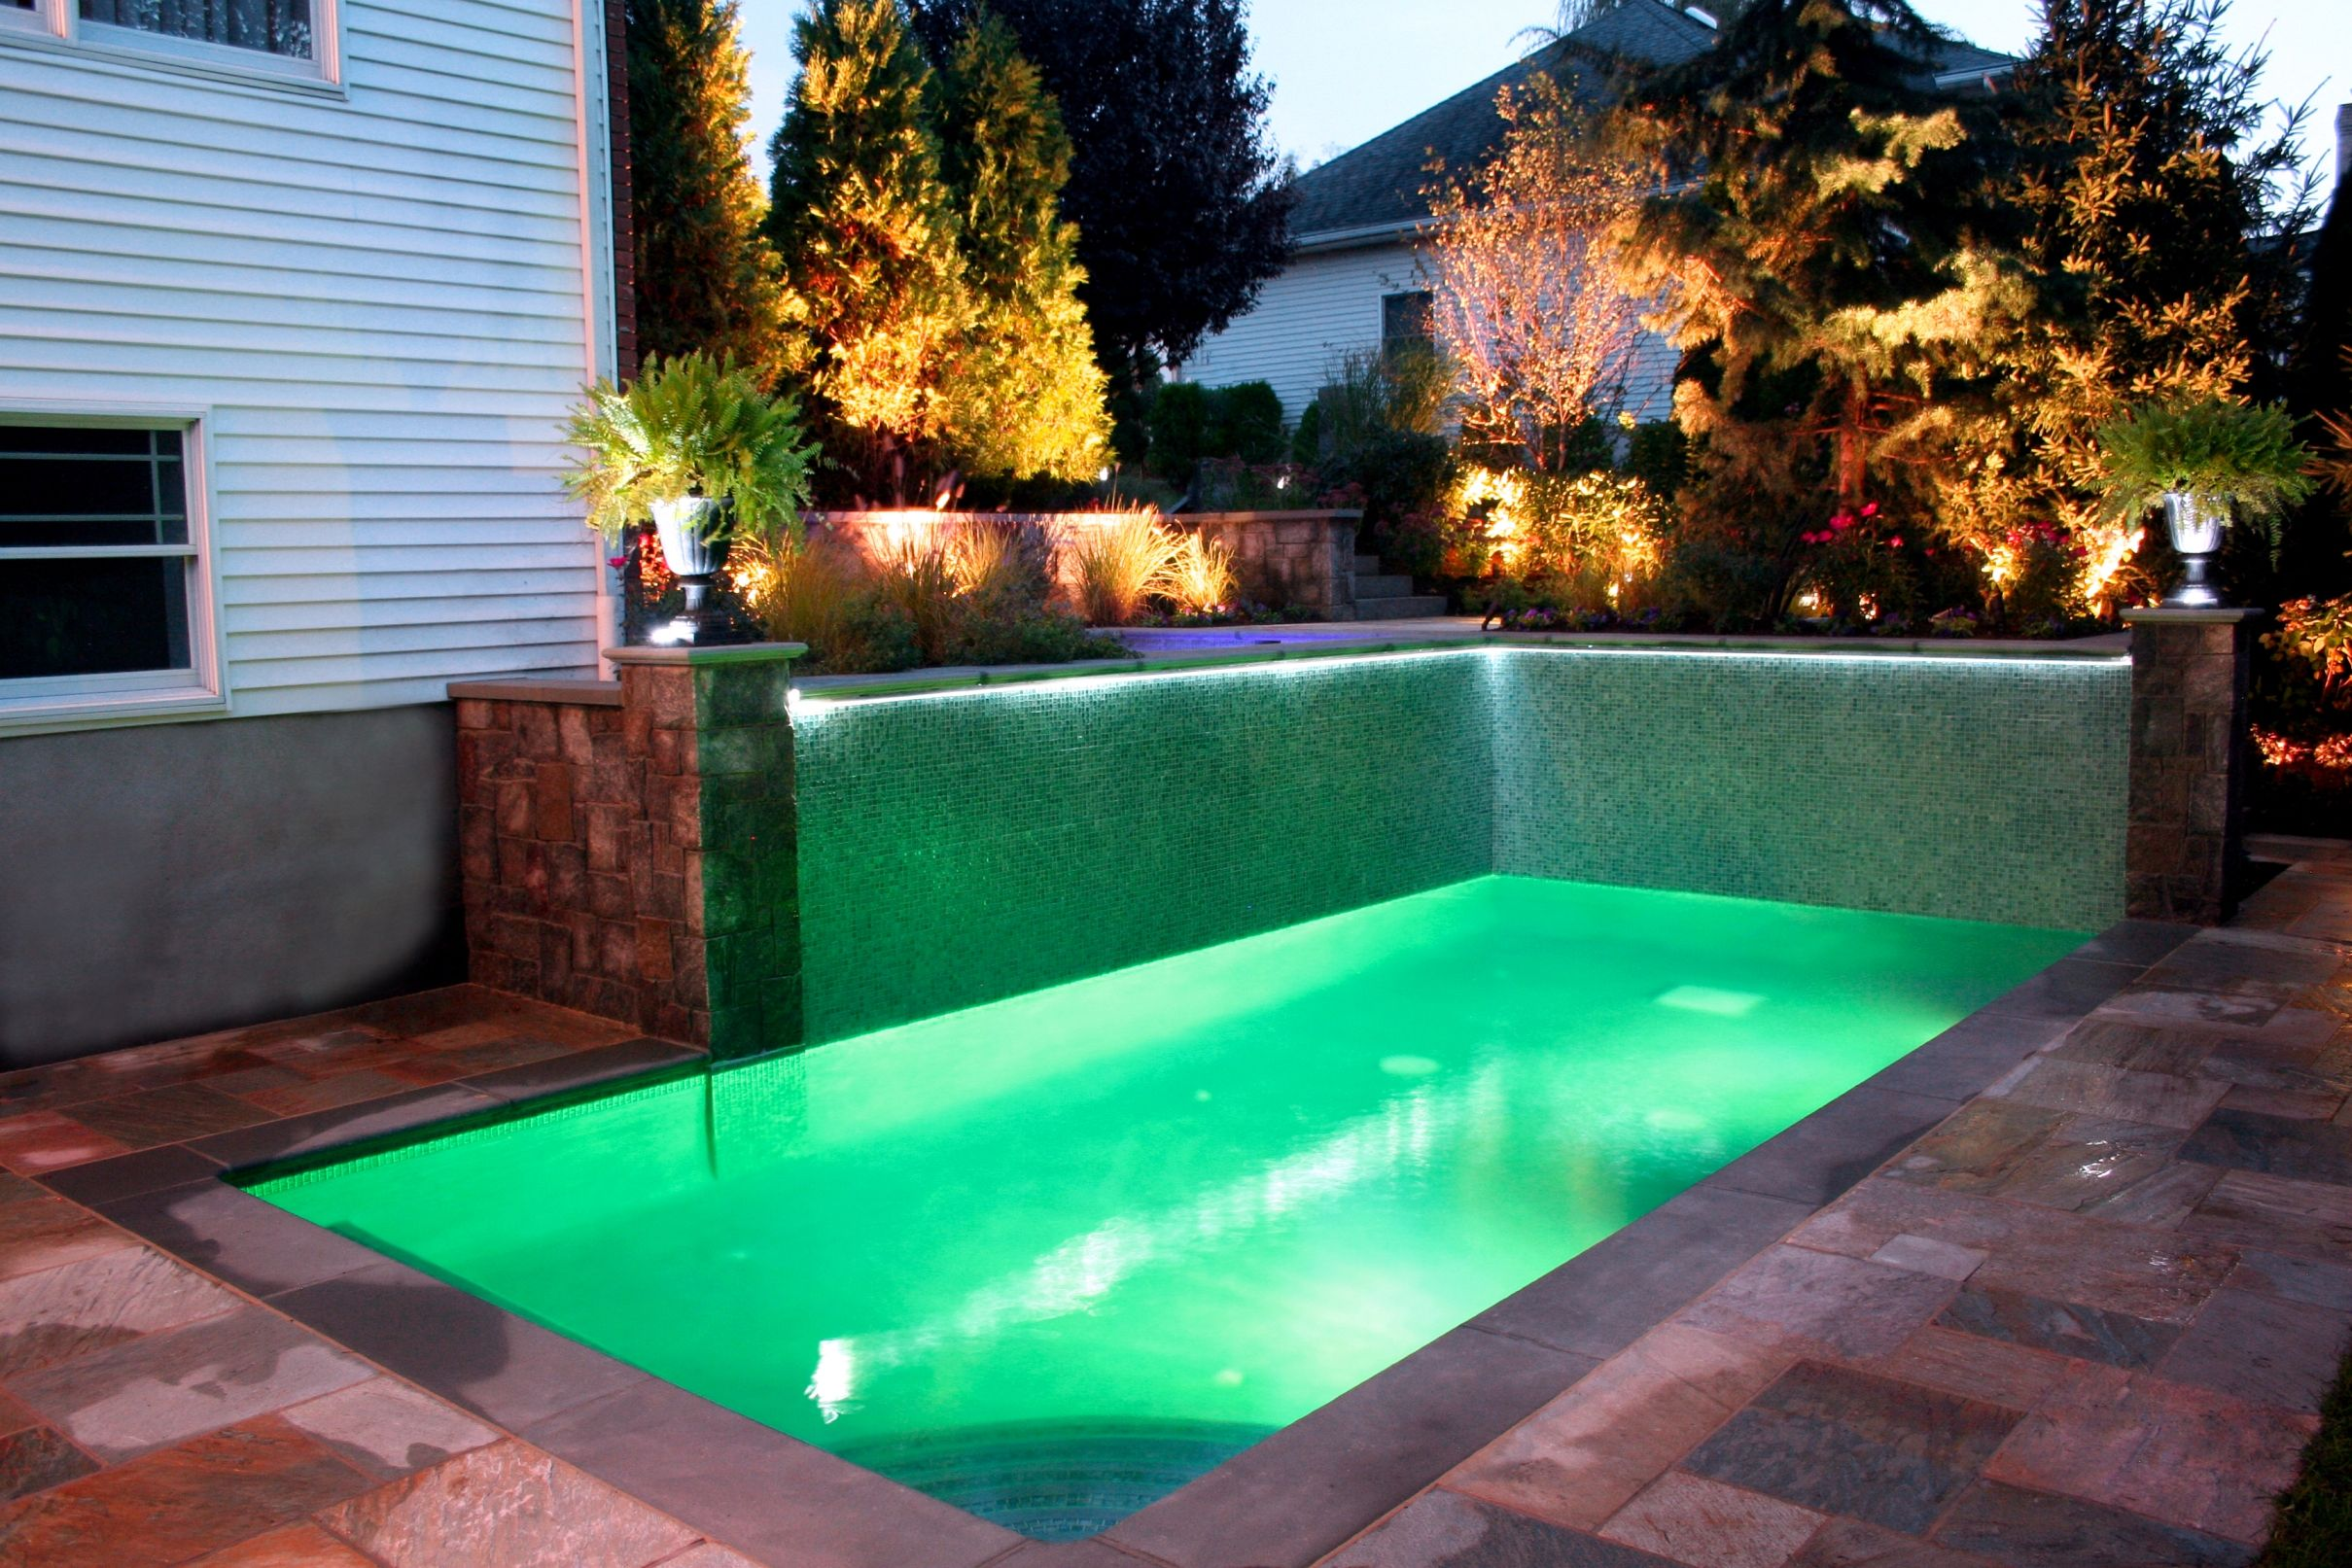 Nice Pool For Small Yard | Pools in a Small Area | Pinterest ...